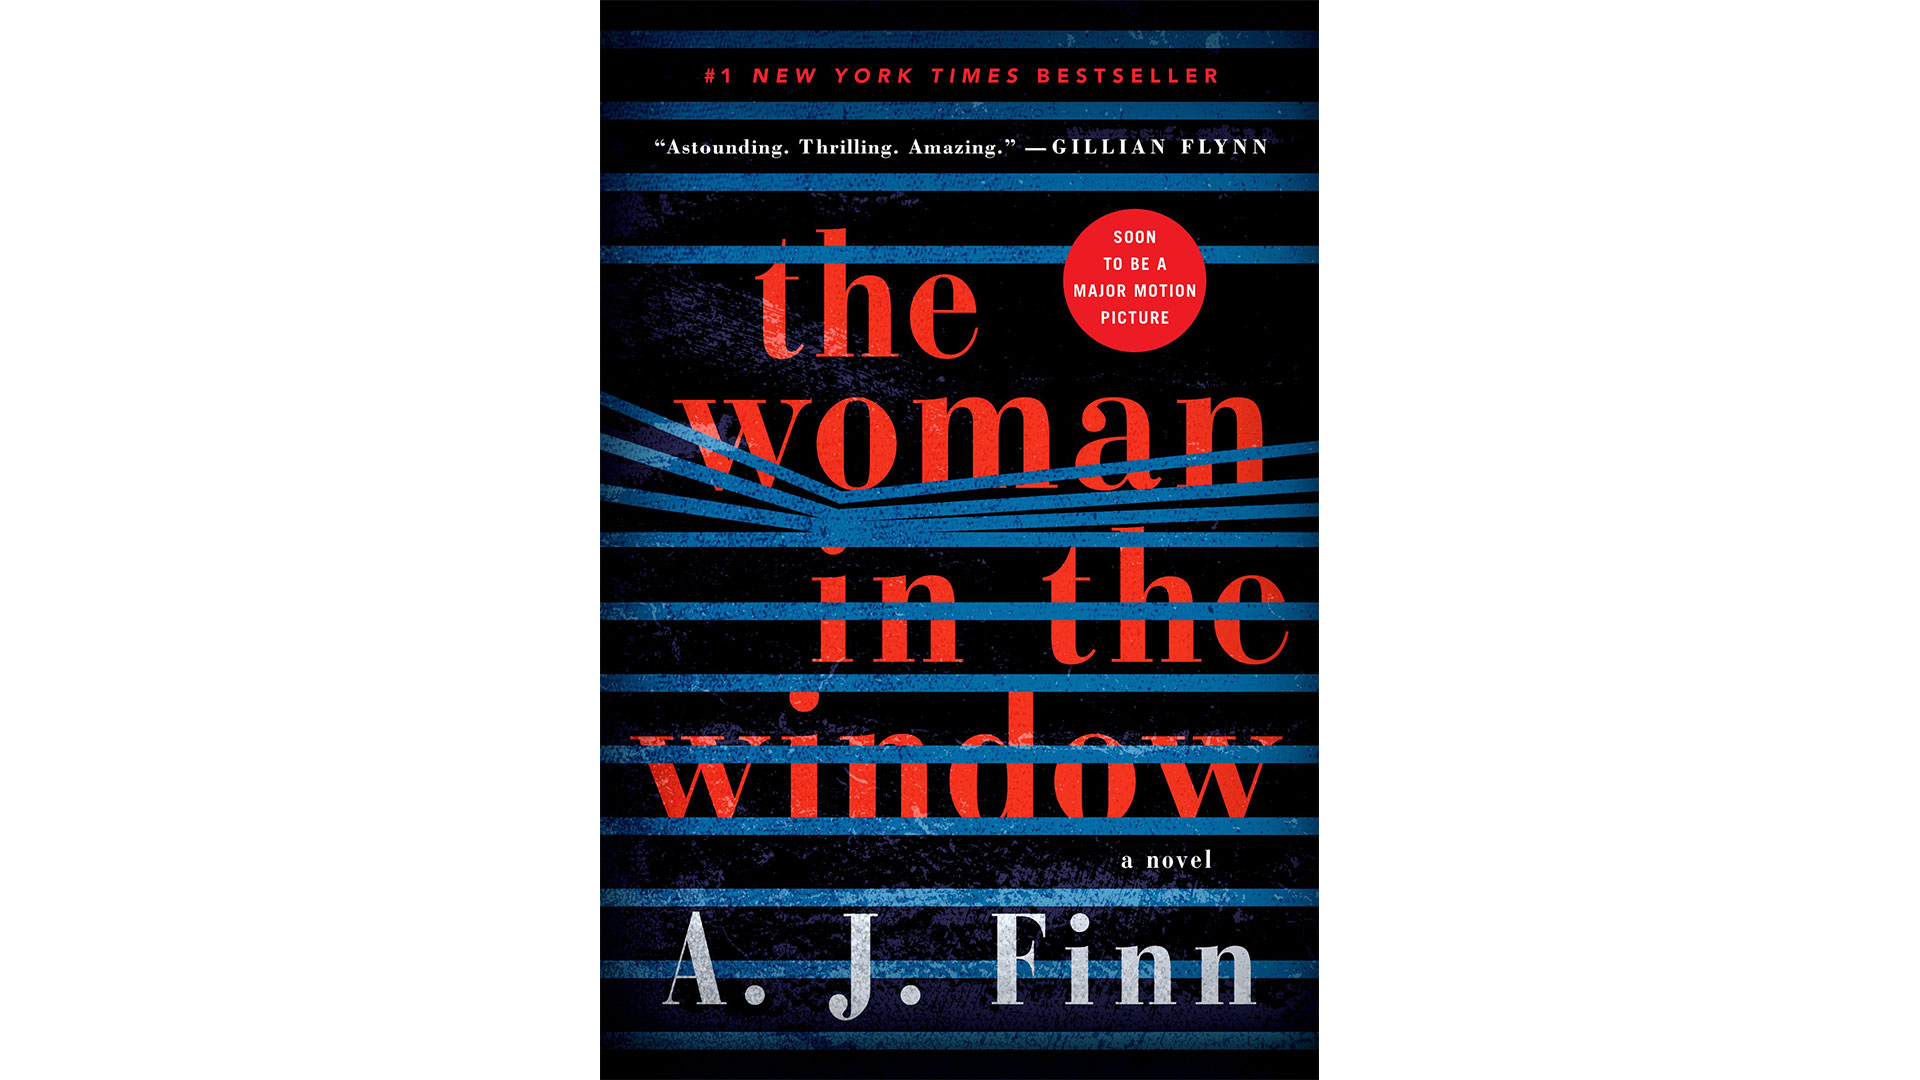 Amazon Best Books 2018 The Woman in the Window